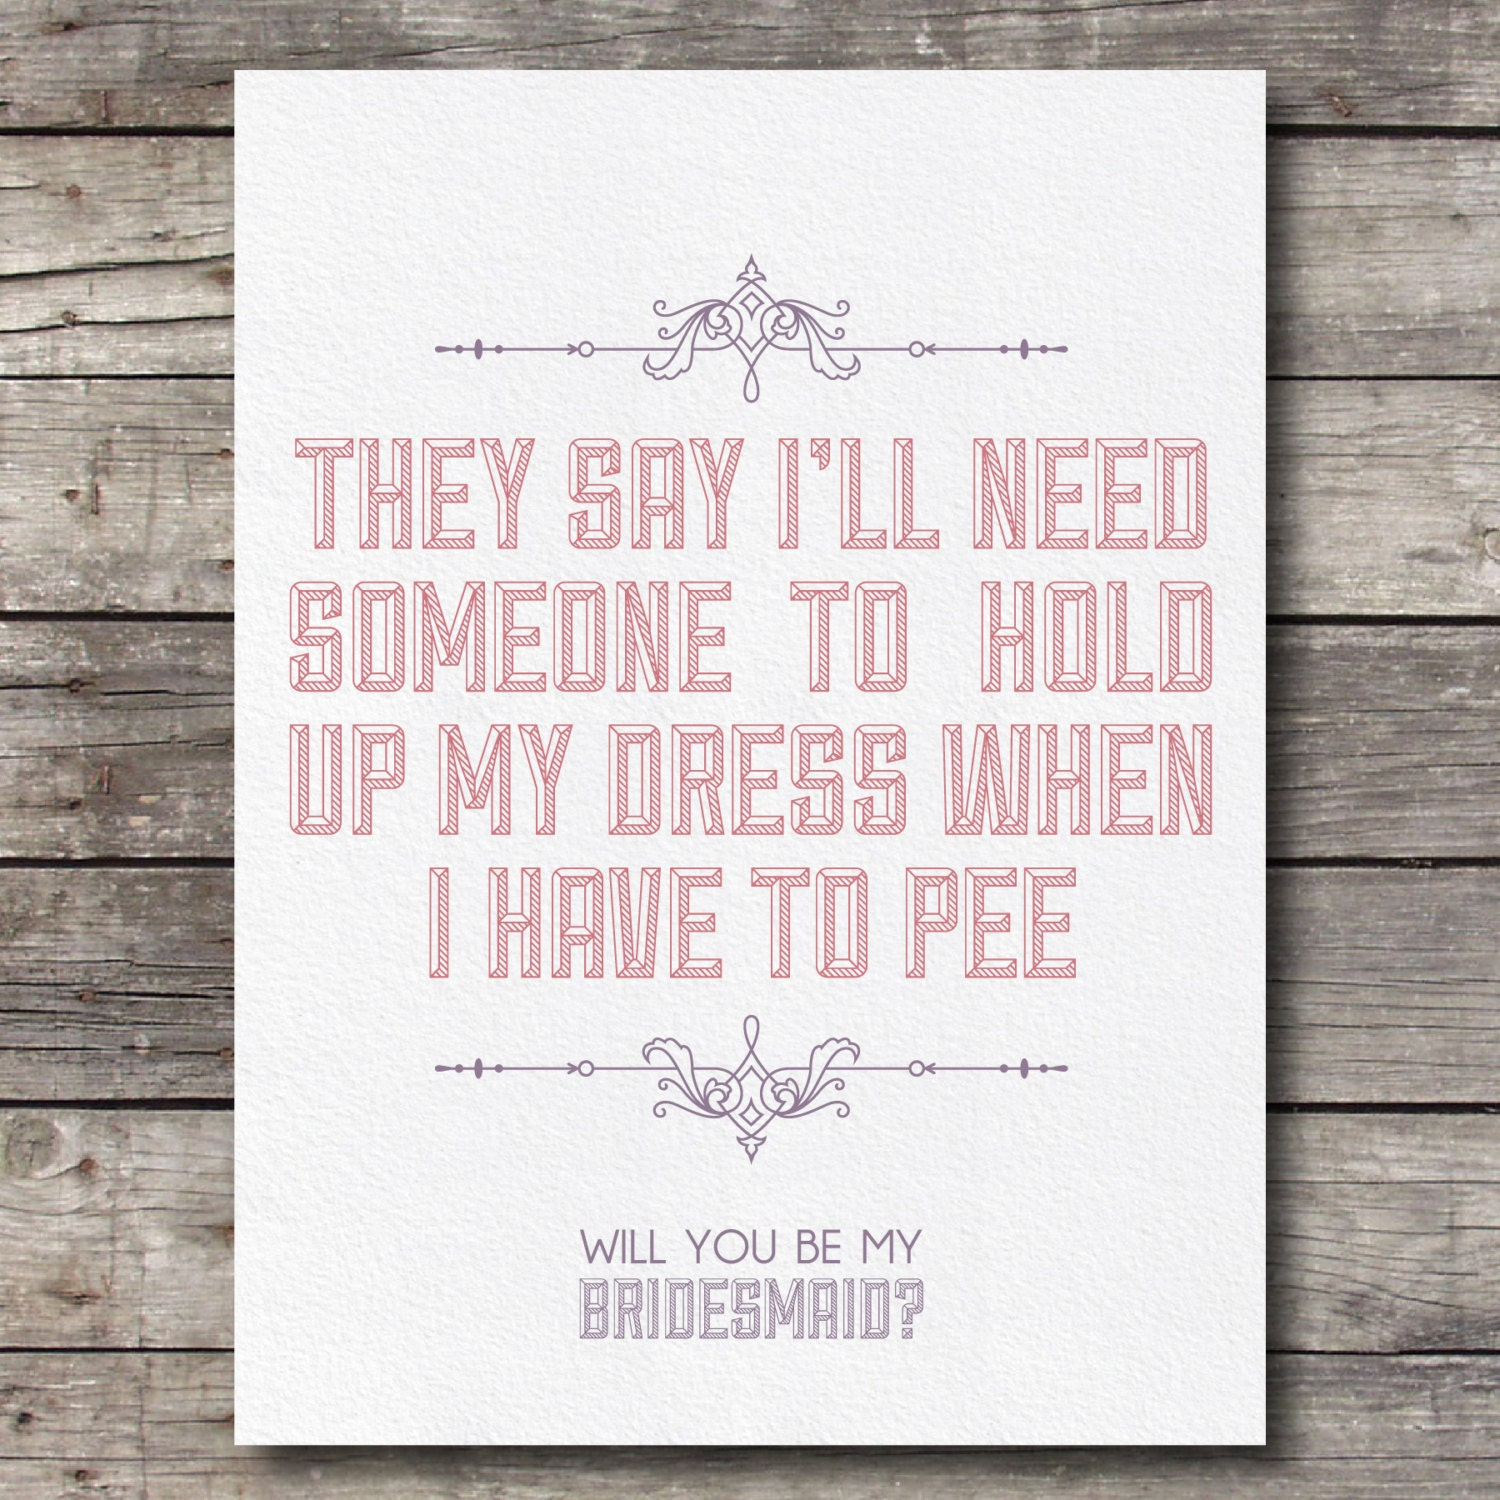 Funny Ways To Ask Bridesmaids To Be In Your Wedding: Will You Be My Bridesmaid Card Customizable By Bigdayshop